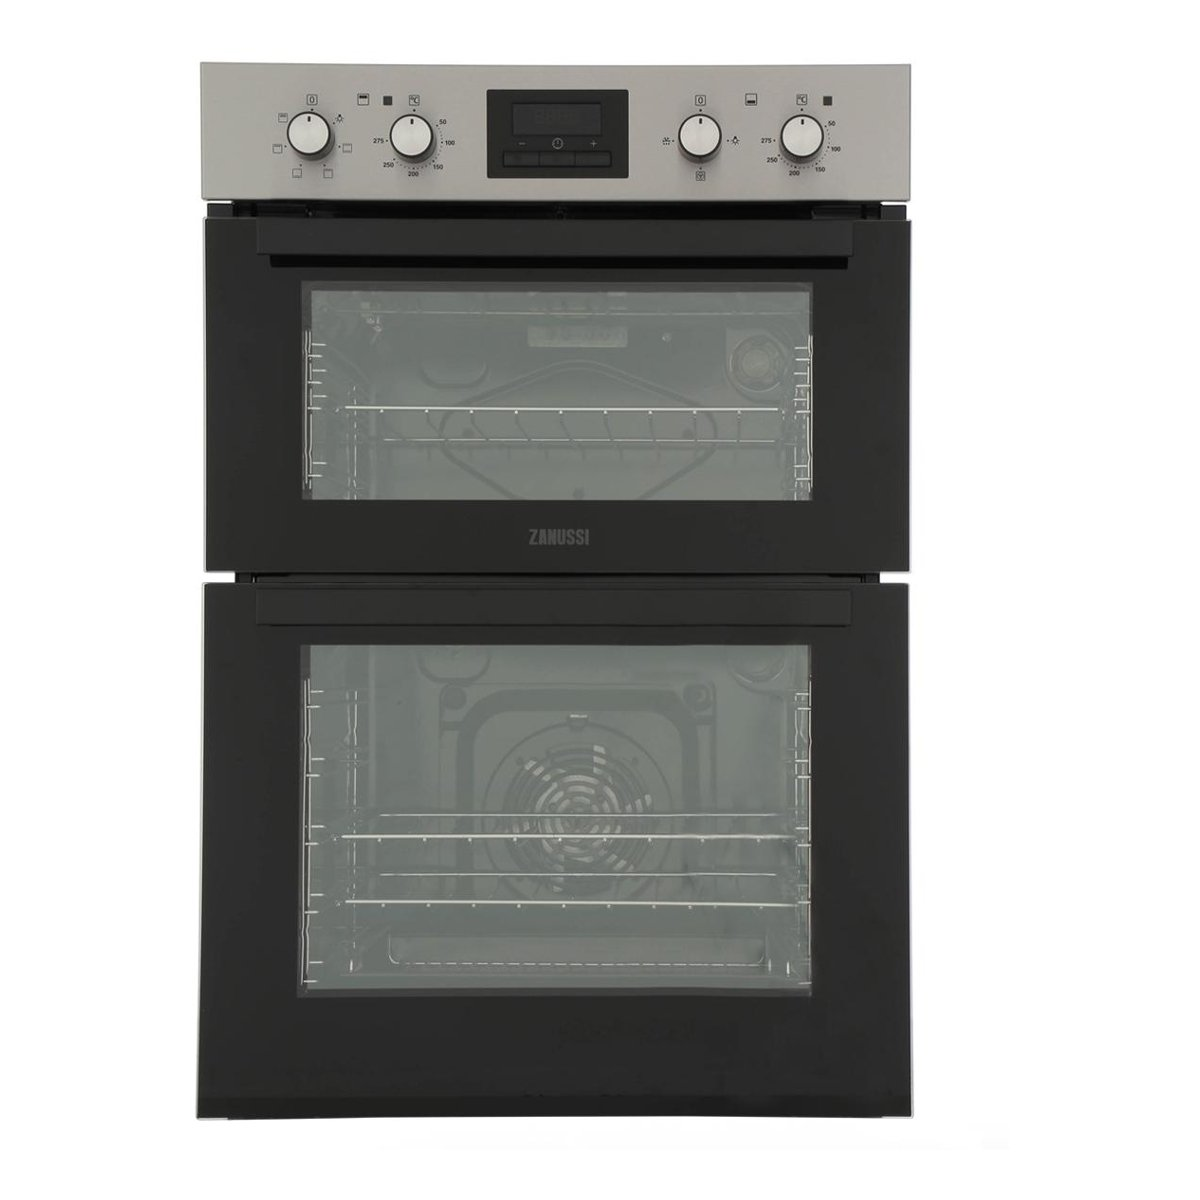 Zanussi ZOD35661XC Built-in Electric Double Oven 7-Multi-Functions S\/Steel